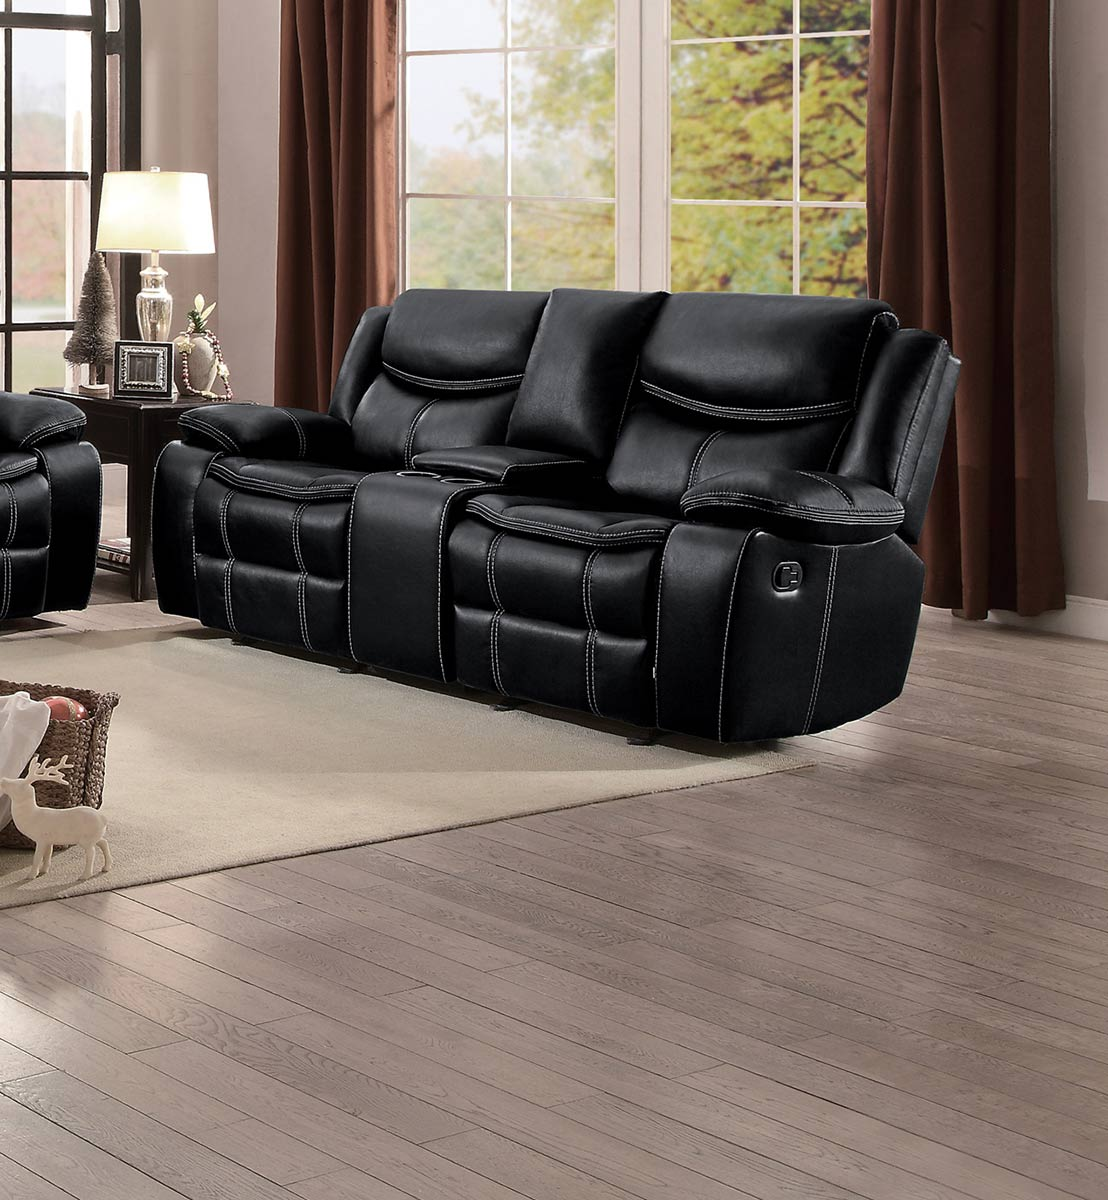 Homelegance Bastrop Double Glider Reclining Love Seat with Console - Black Leather Gel Match